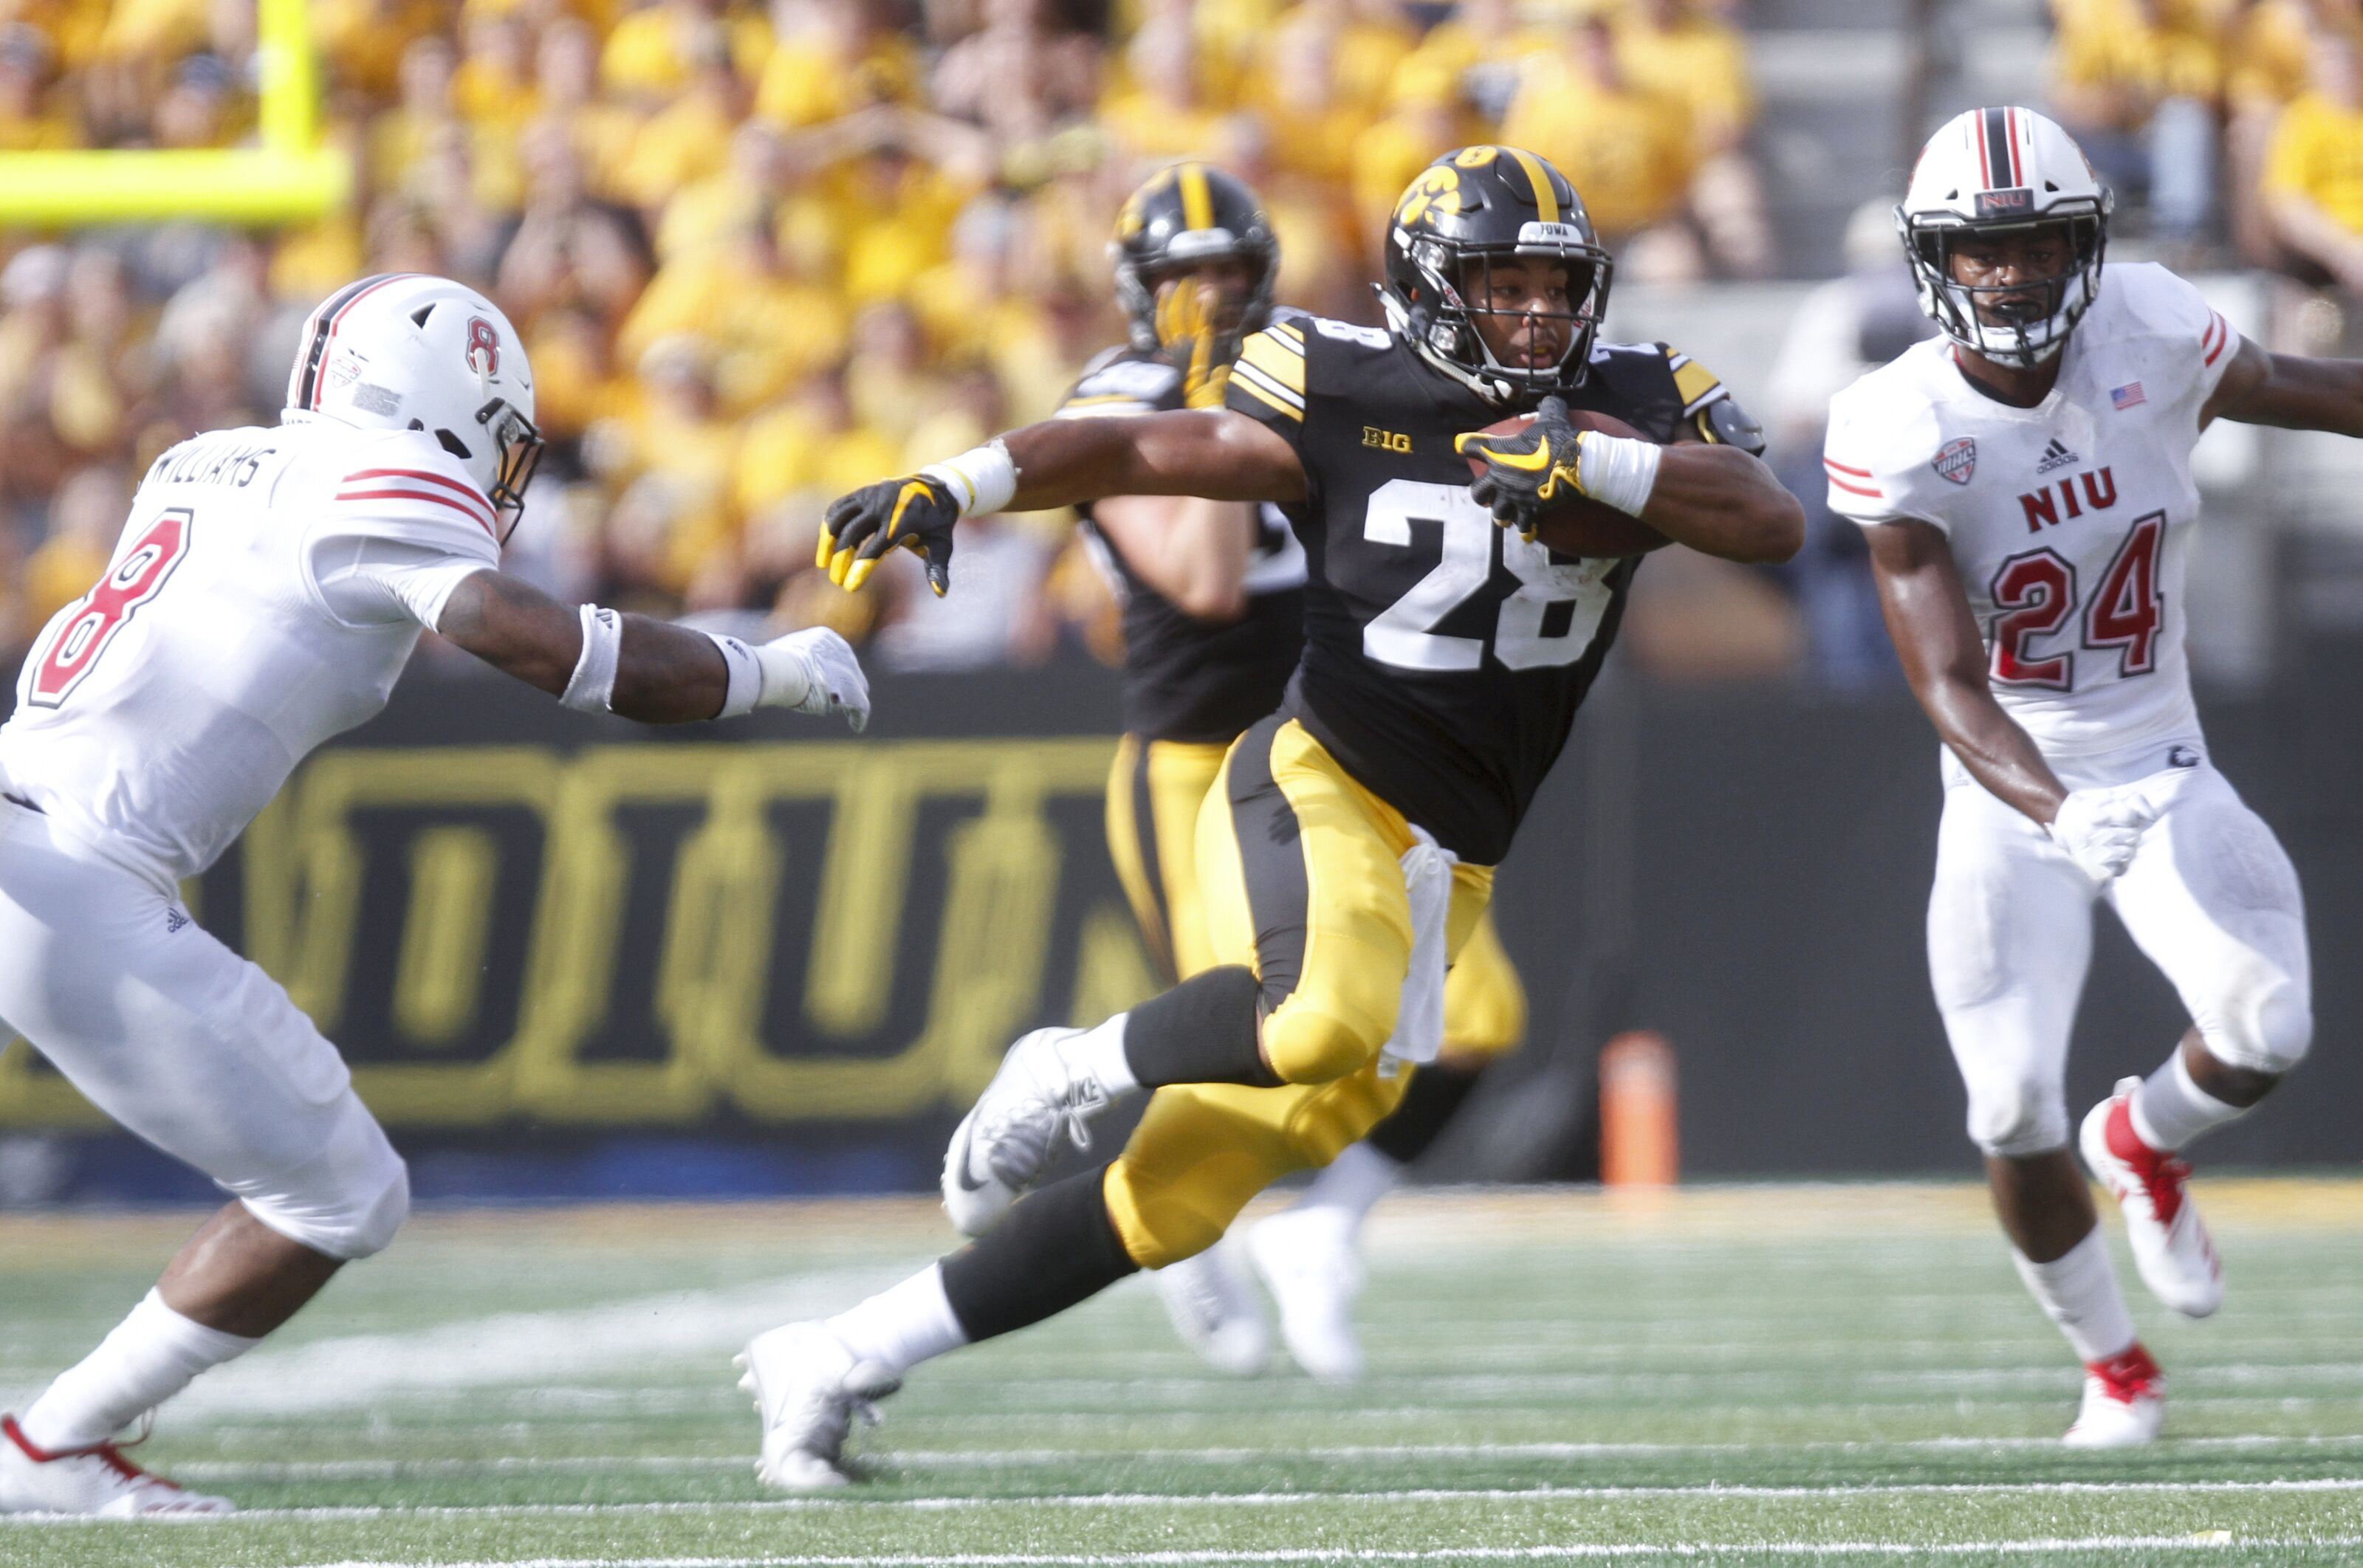 Iowa football: How Hawks would rank in a new NCAA video game